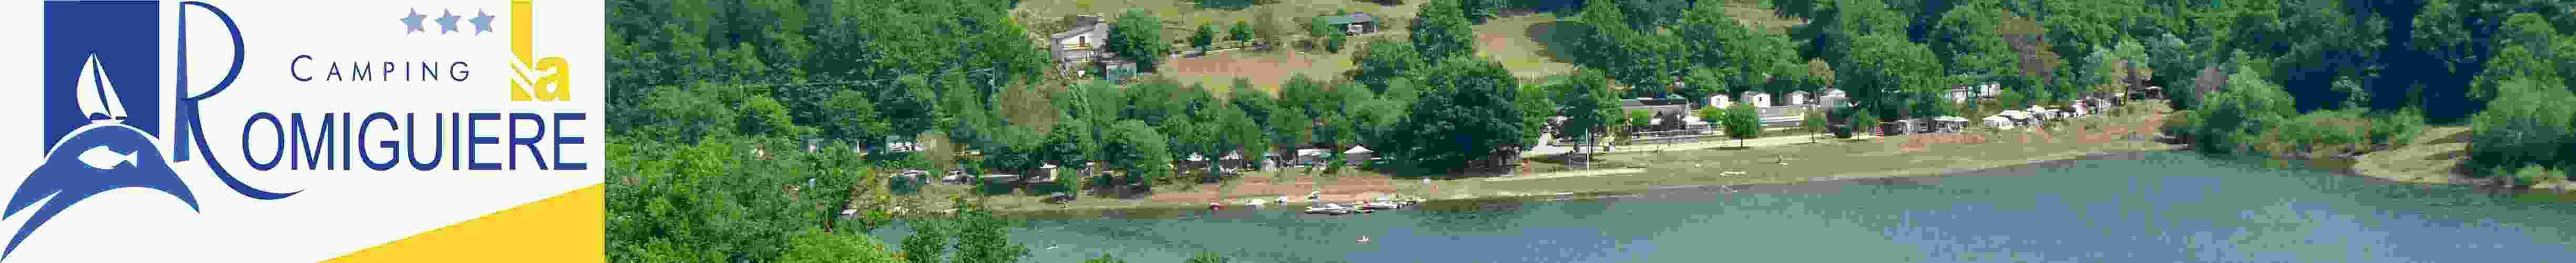 Welcome to Camping La Romiguière by the lake near Laguiole in Aveyron